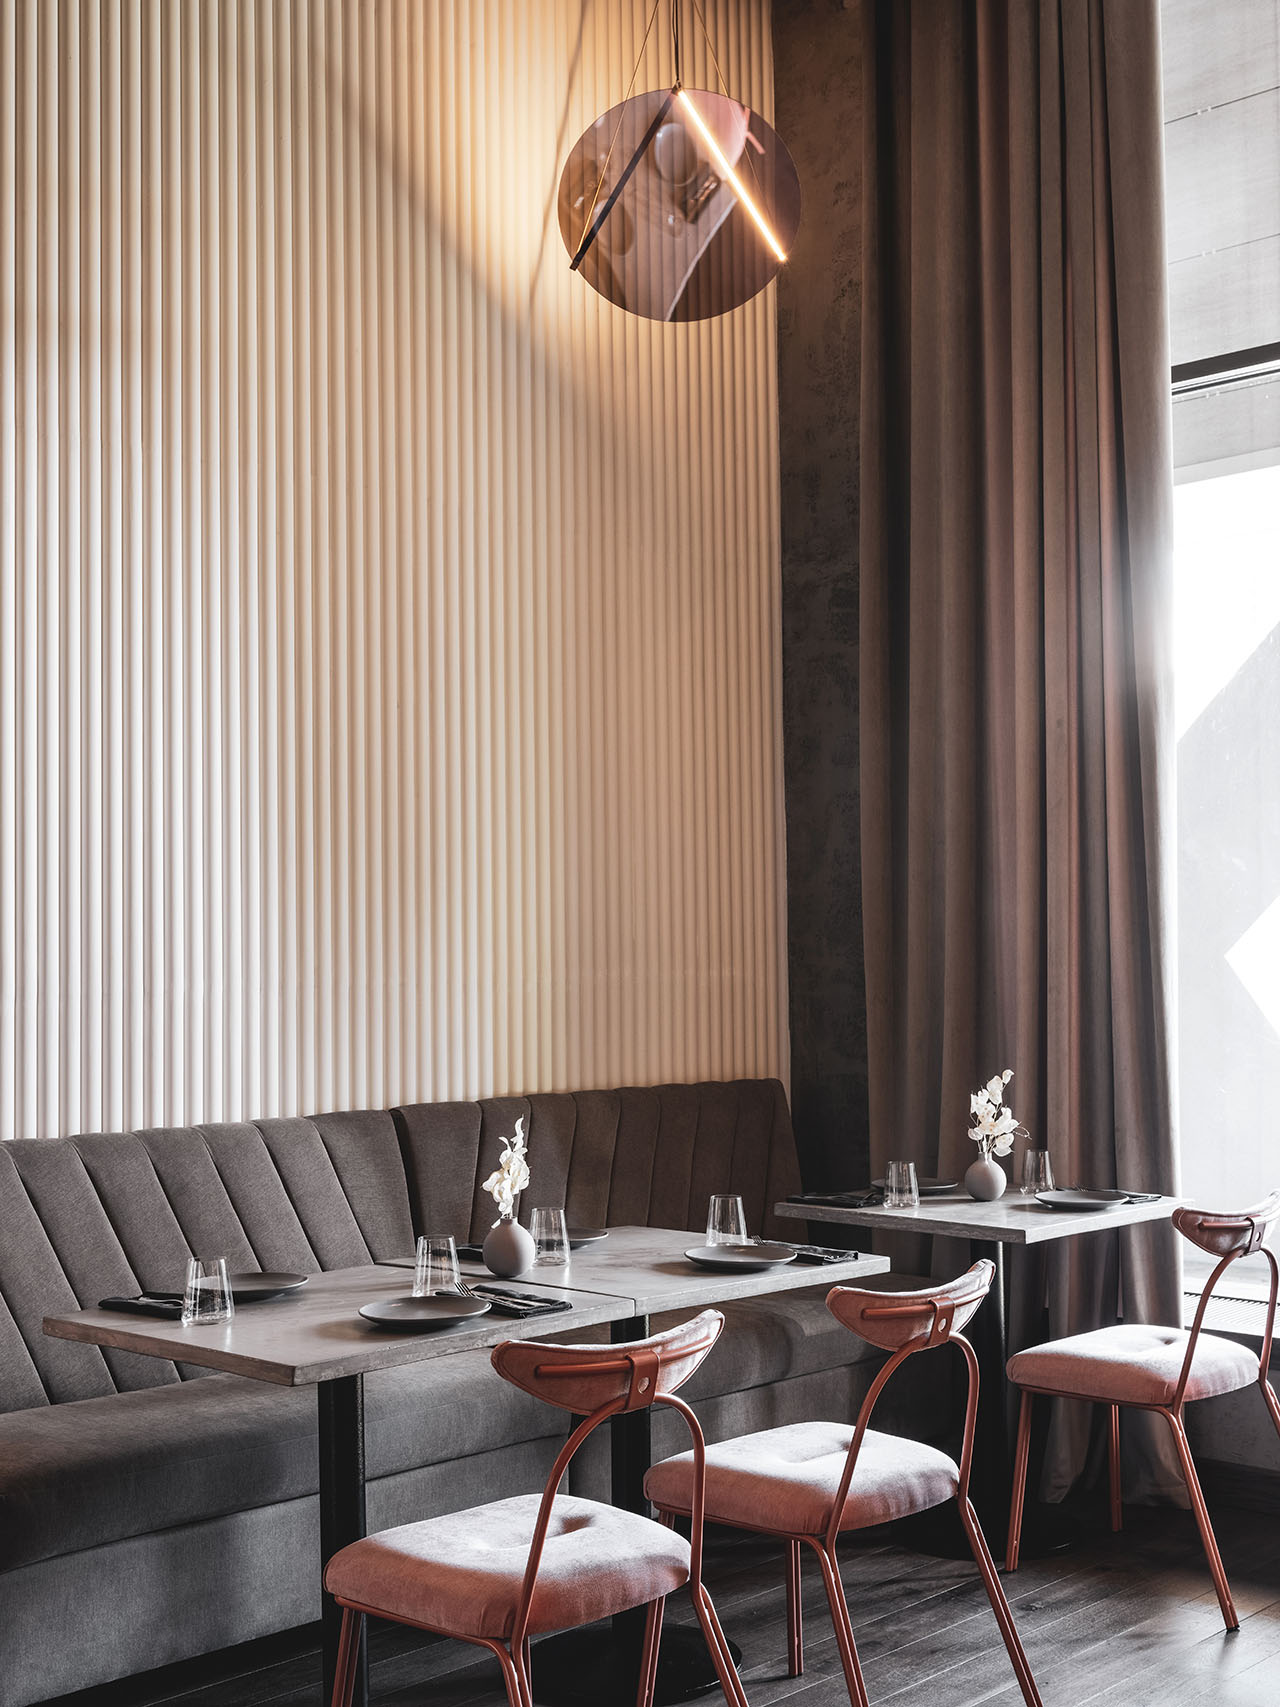 Polet Café by Asthetique in Moscow, Russia. Photography by Mikhail Loskutov.